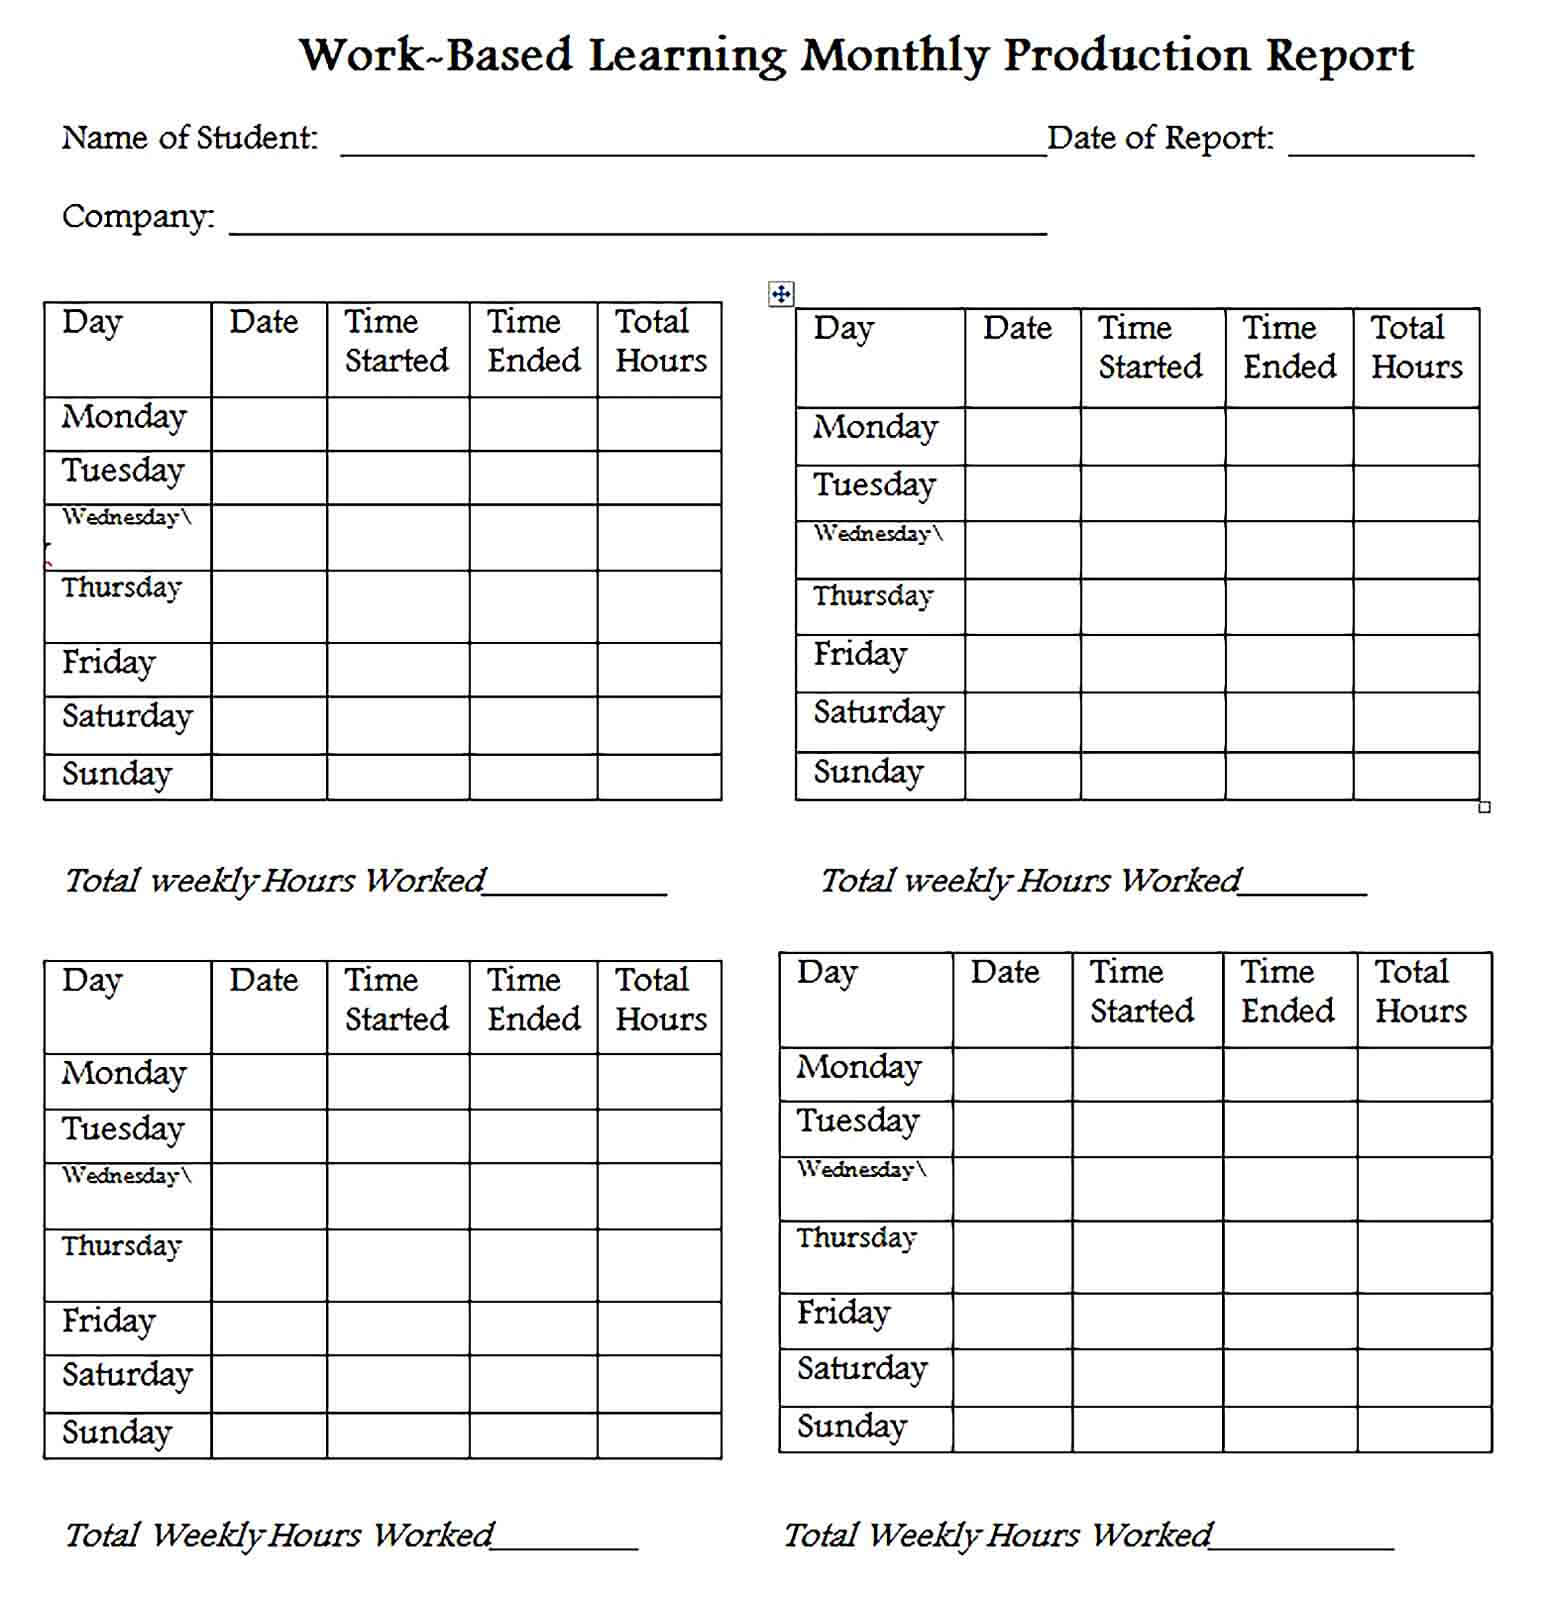 Sample Monthly Production Report Word Template 1